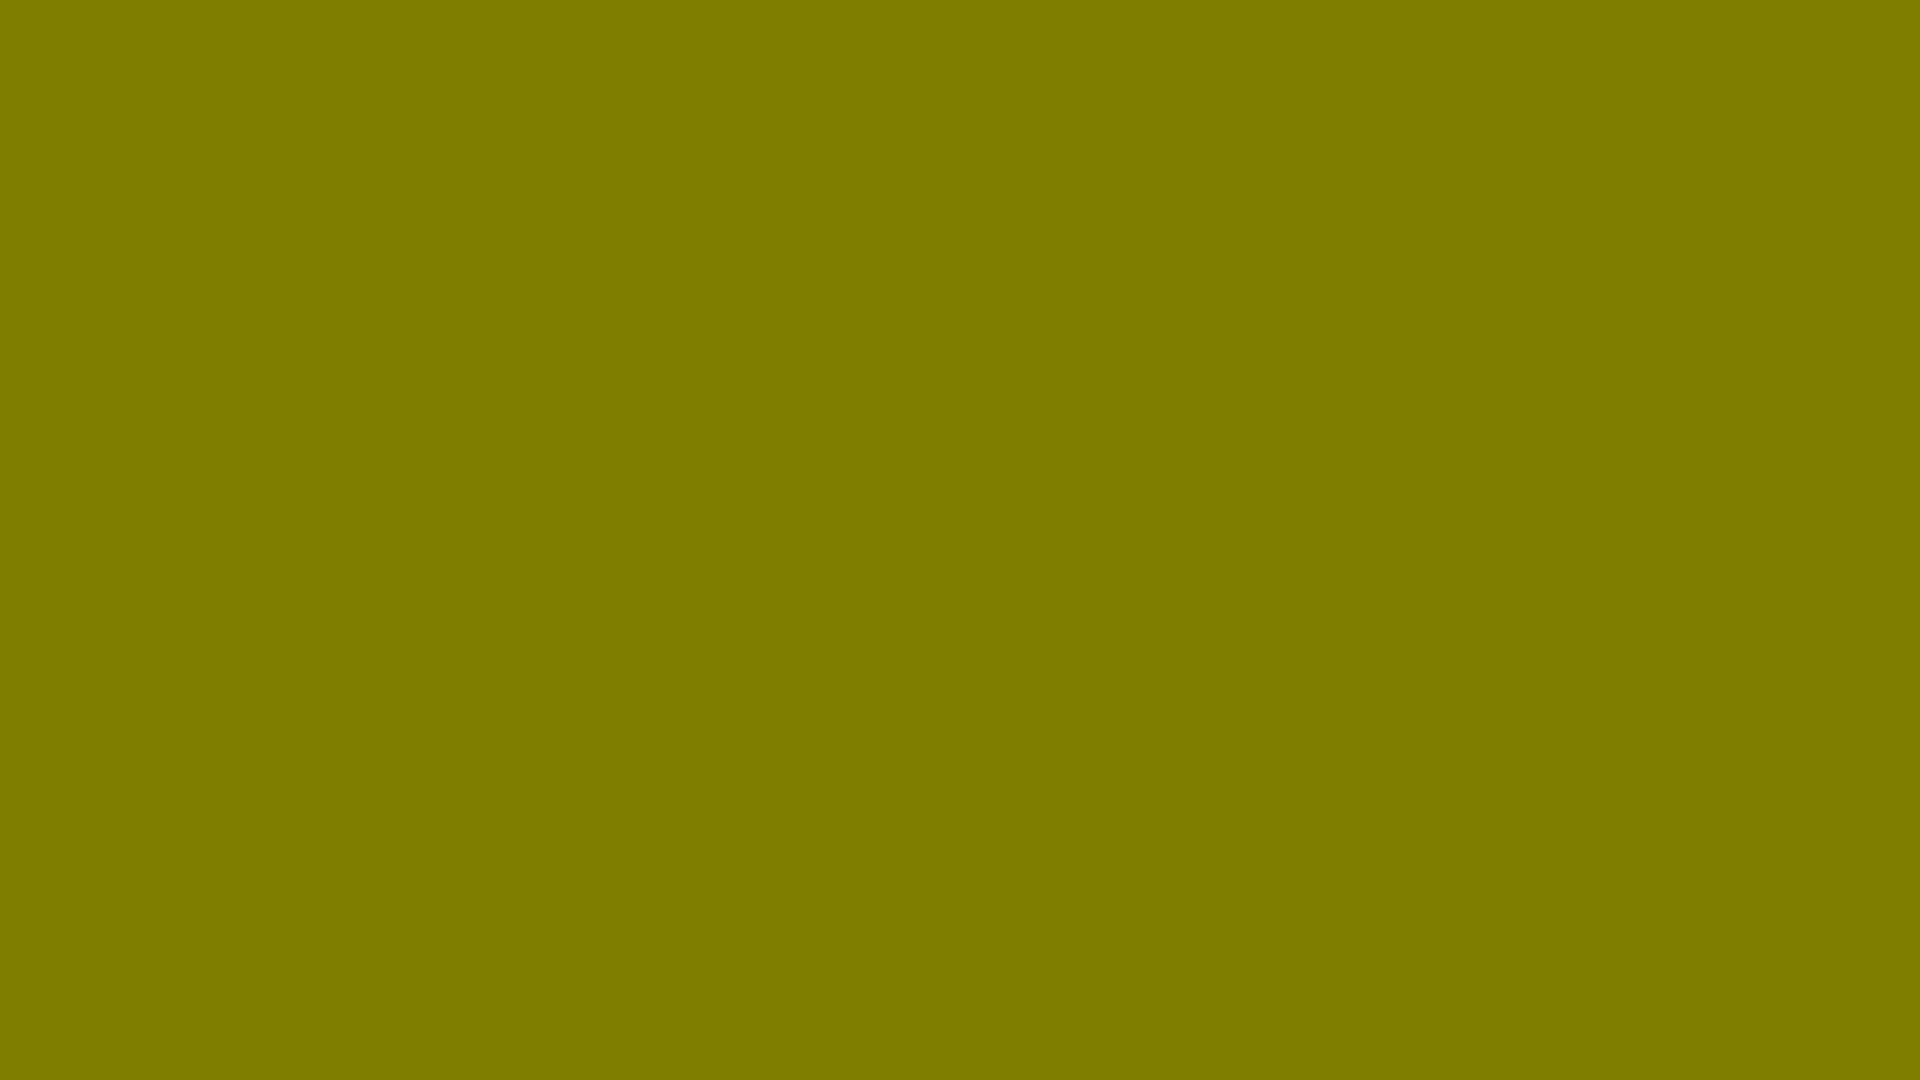 1920x1080 Olive Solid Color Background